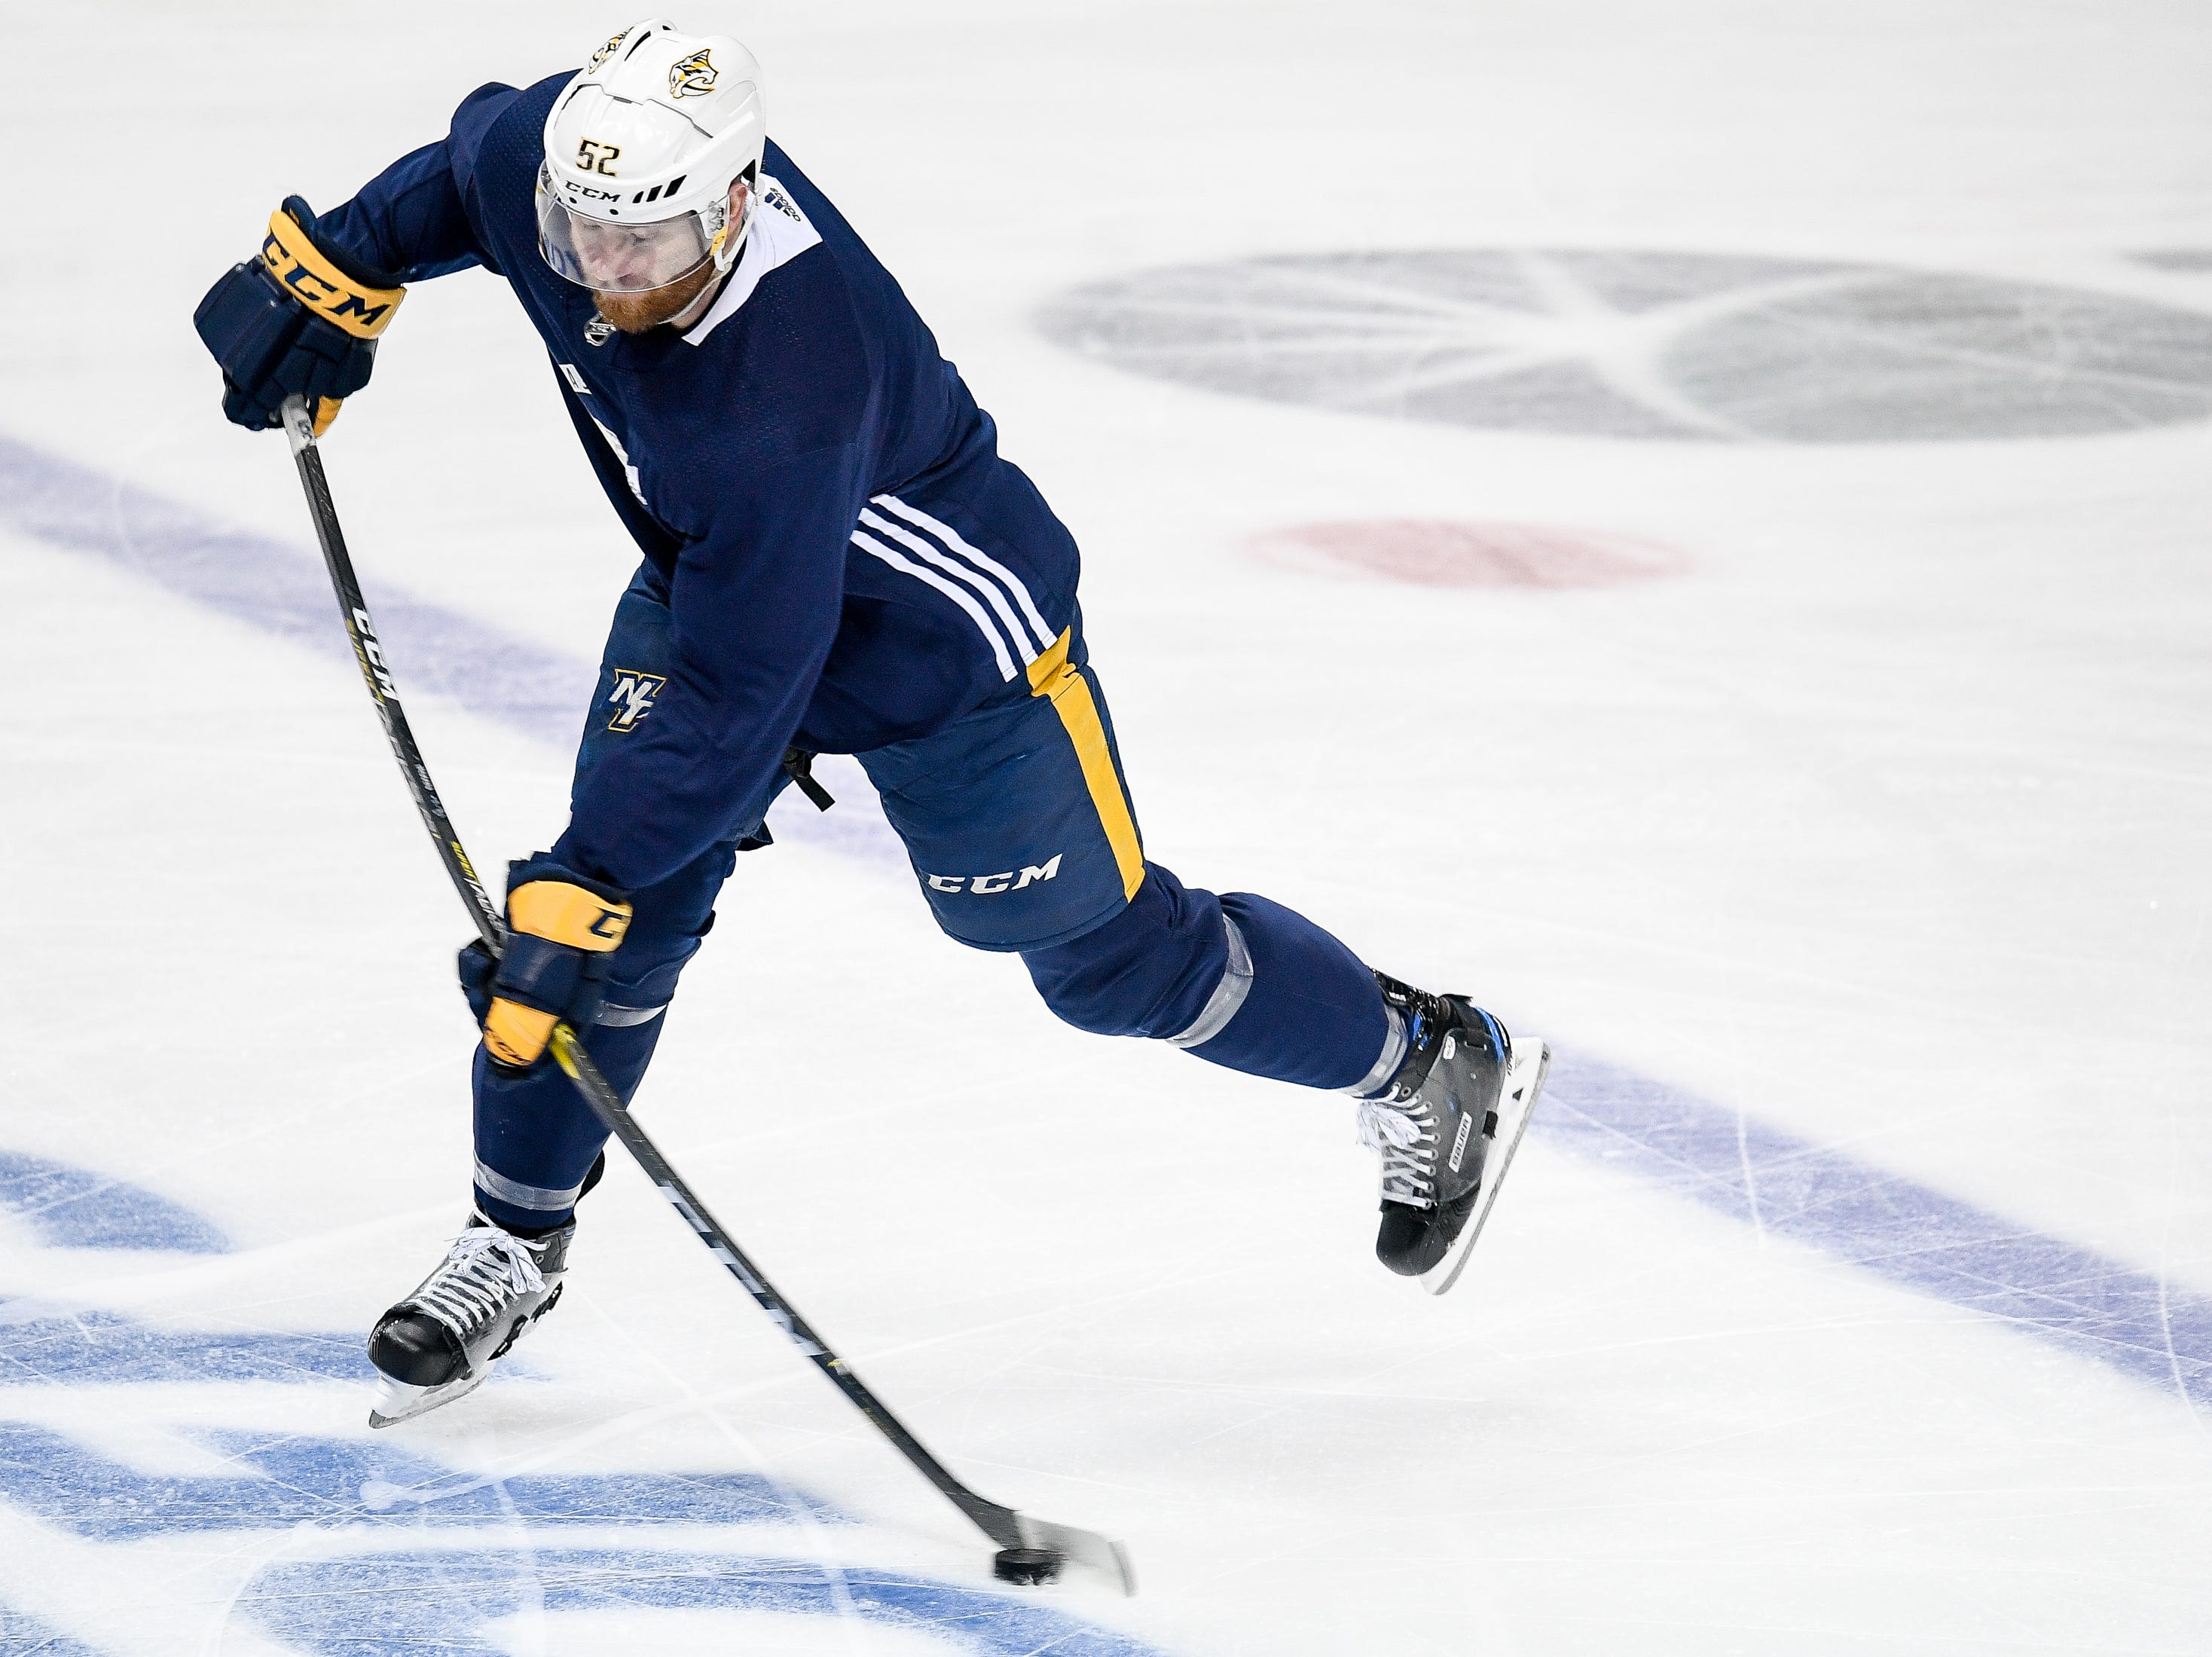 Nashville Predators defenseman Matt Irwin (52) shoots during practice before the divisional semifinal game against the Dallas Stars at the American Airlines Center in Dallas, Texas, Monday, April 22, 2019.